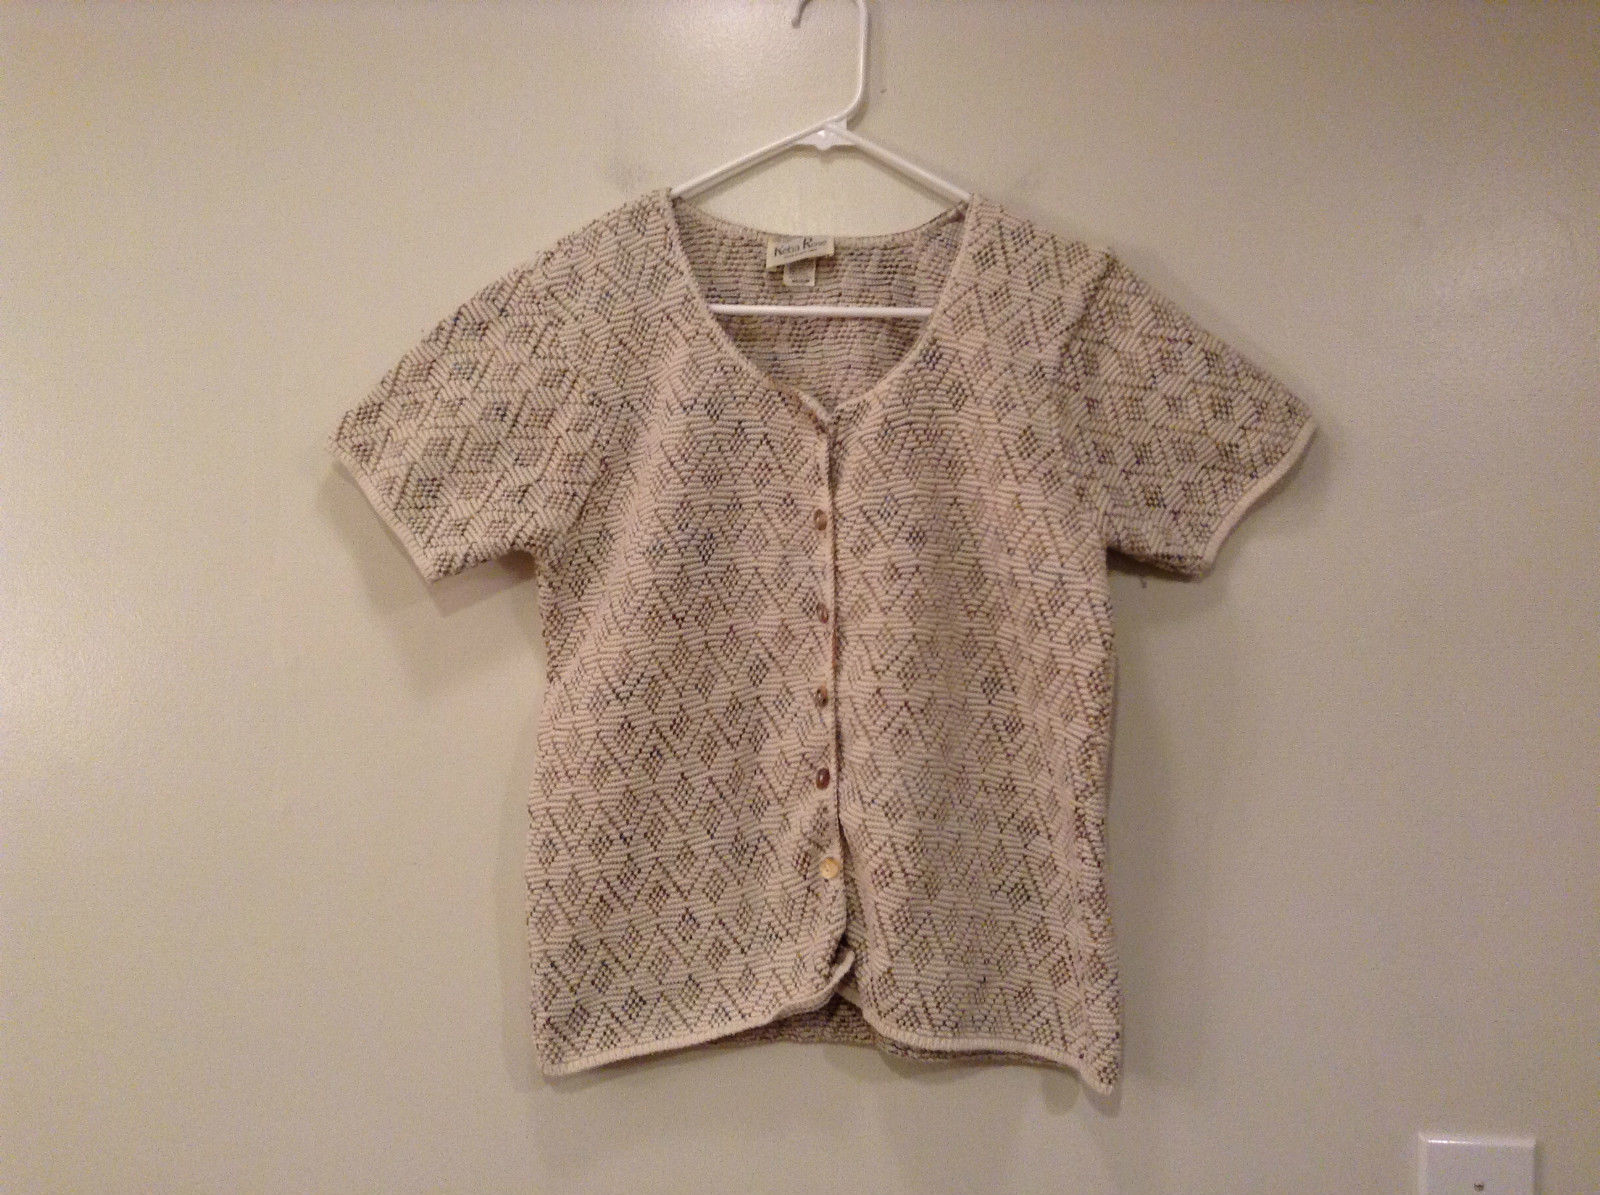 Reba Rose Short Sleeve Knitted Top Beige Natural Shell Buttons Closure Size M